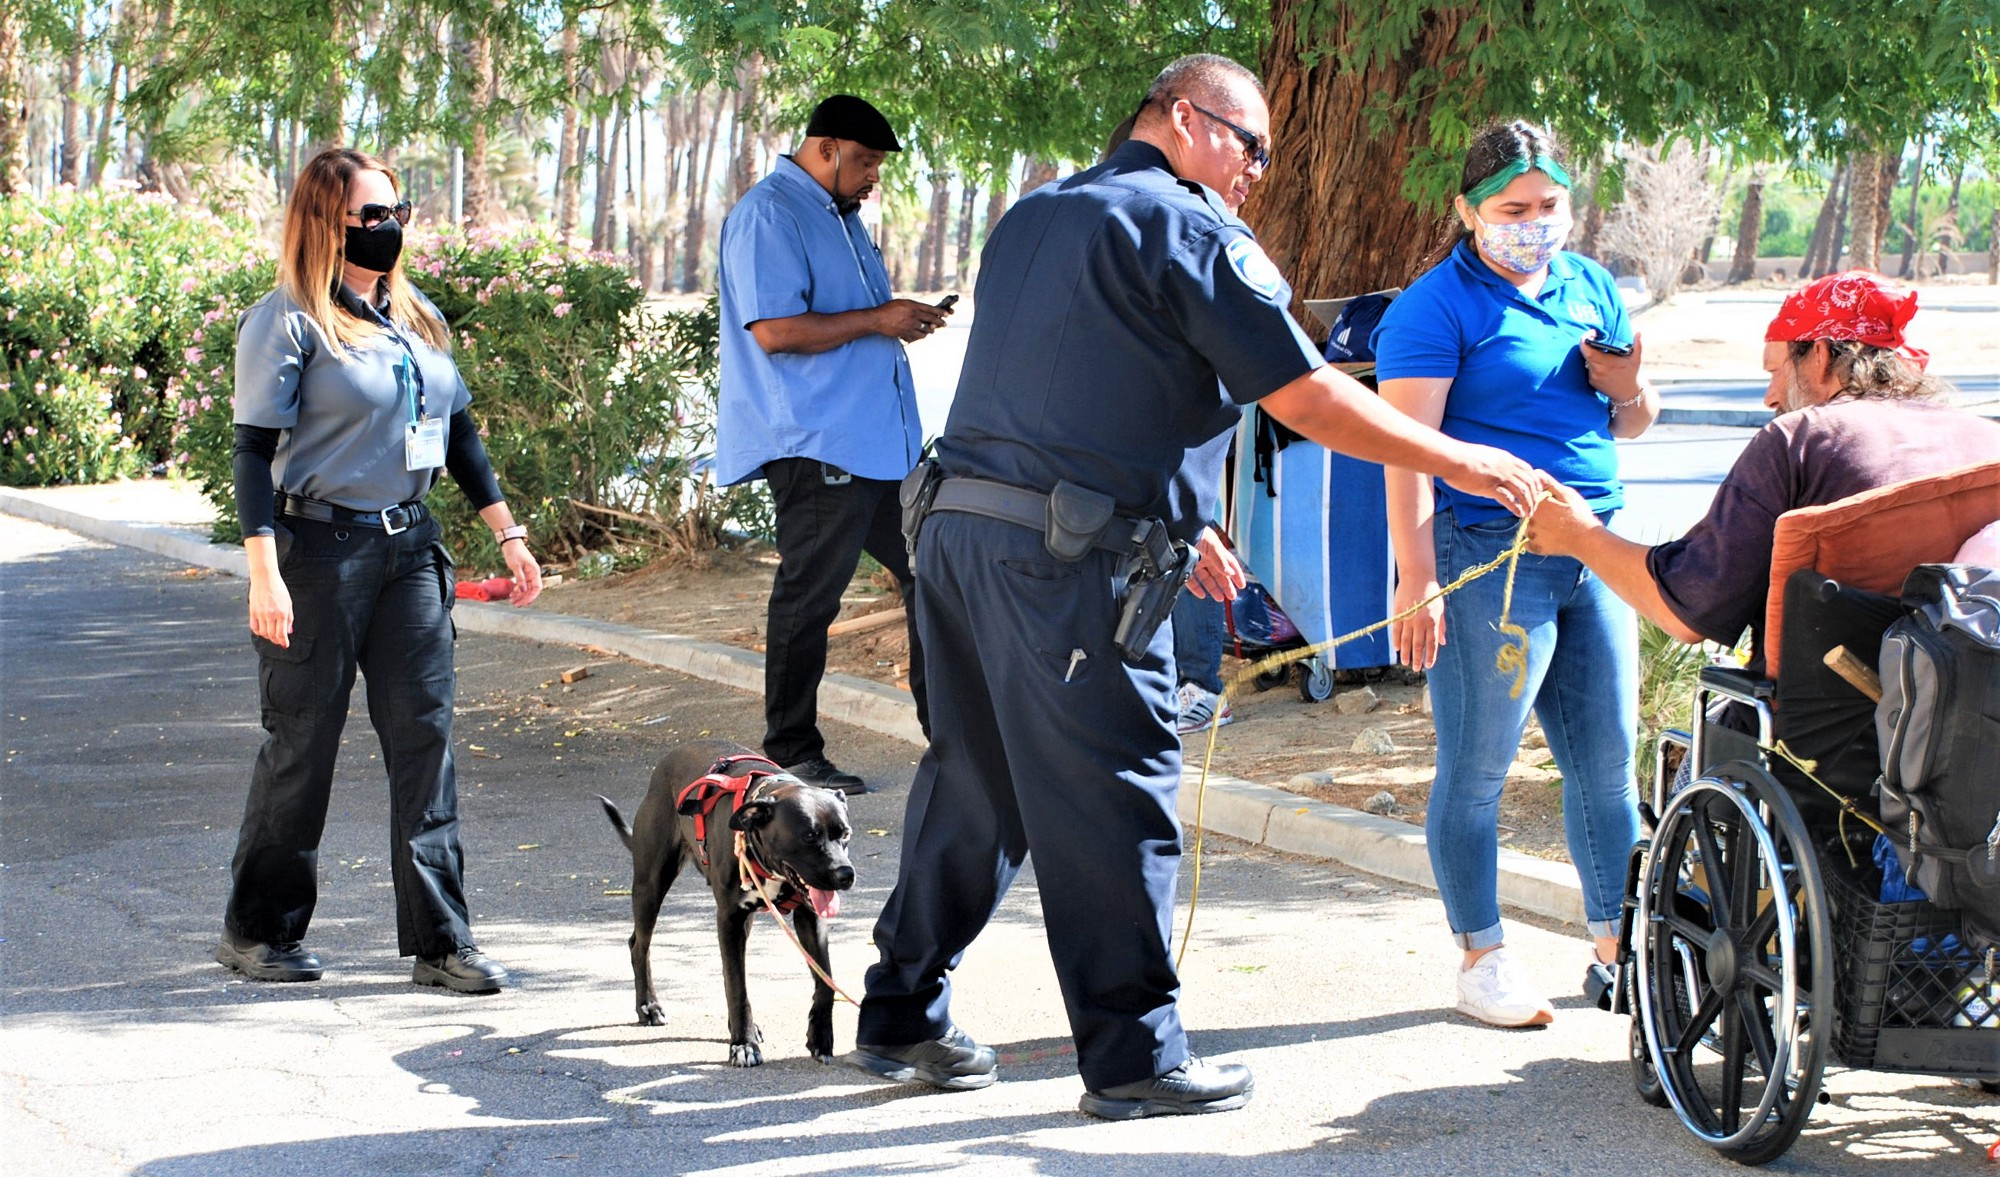 Officer Jose Ibarra and clinical therapist Cynthia Ferreiro (far left) assist a man in Indio, California. Photo courtesy of Indio Police Department